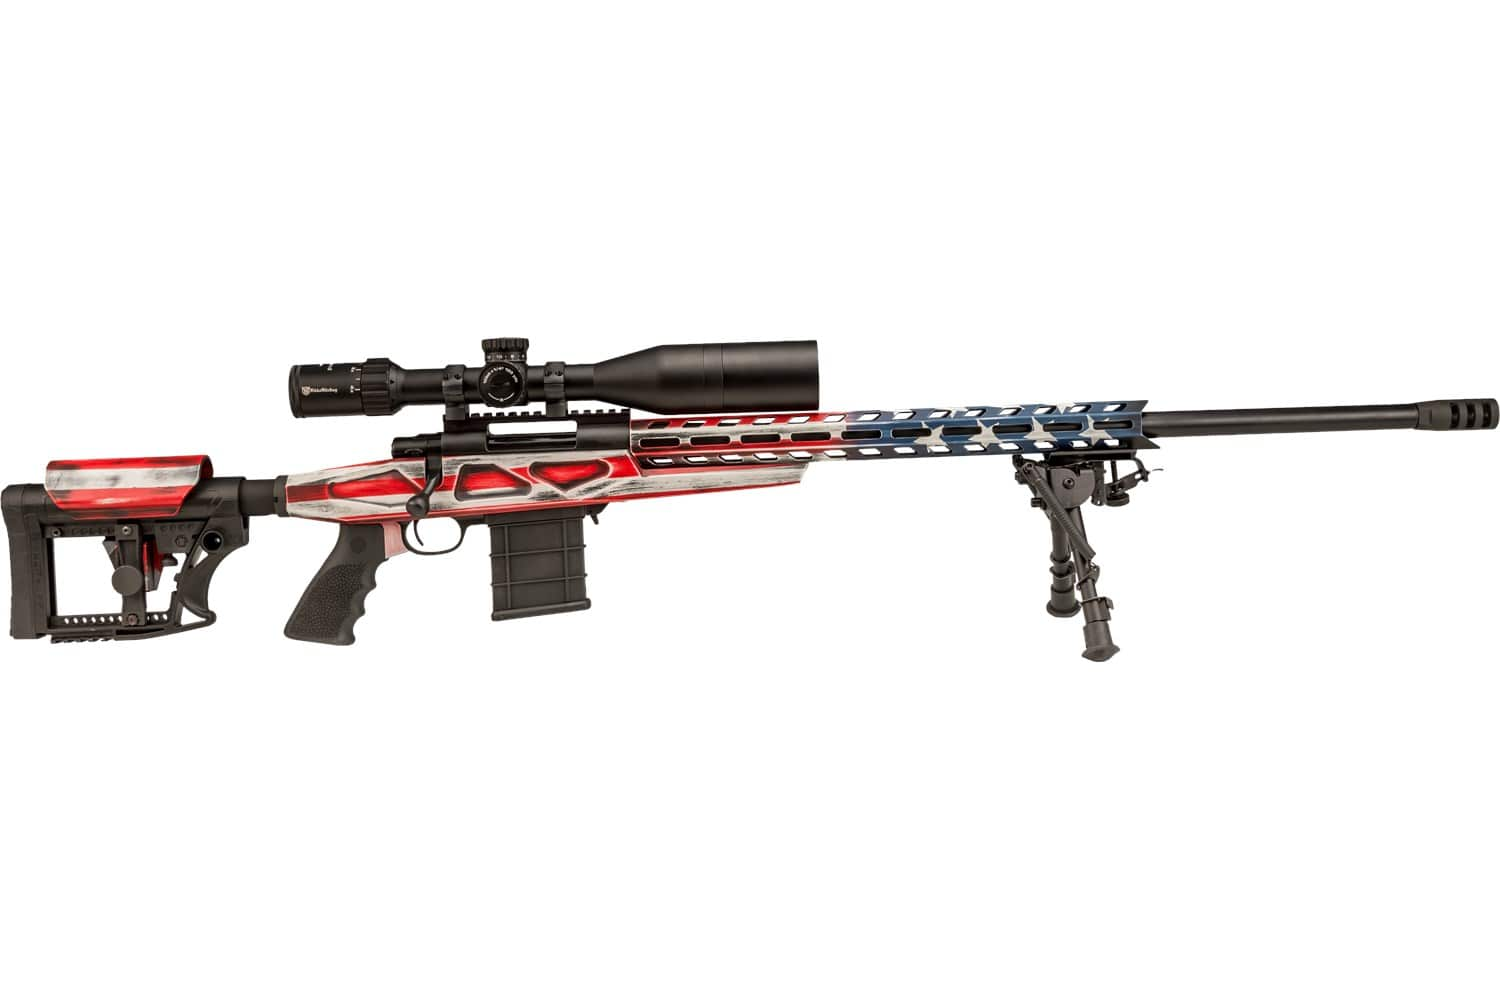 Image of HOWA AMERICAN FLAG CHASSIS HCRA72507USK